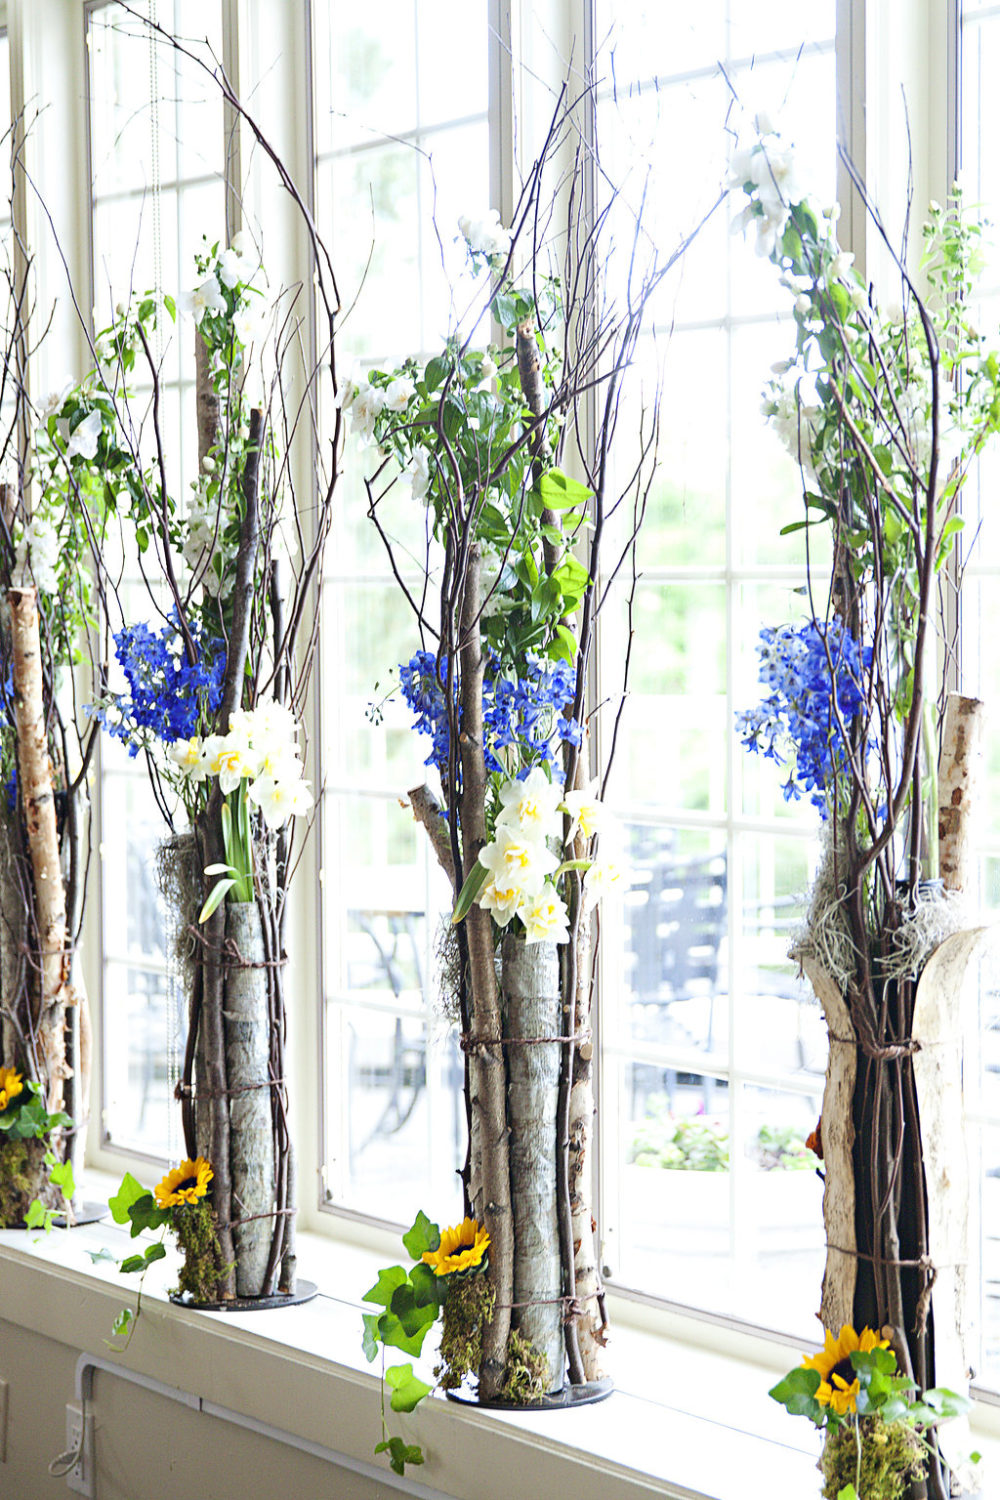 wooddy and blue floral wedding design